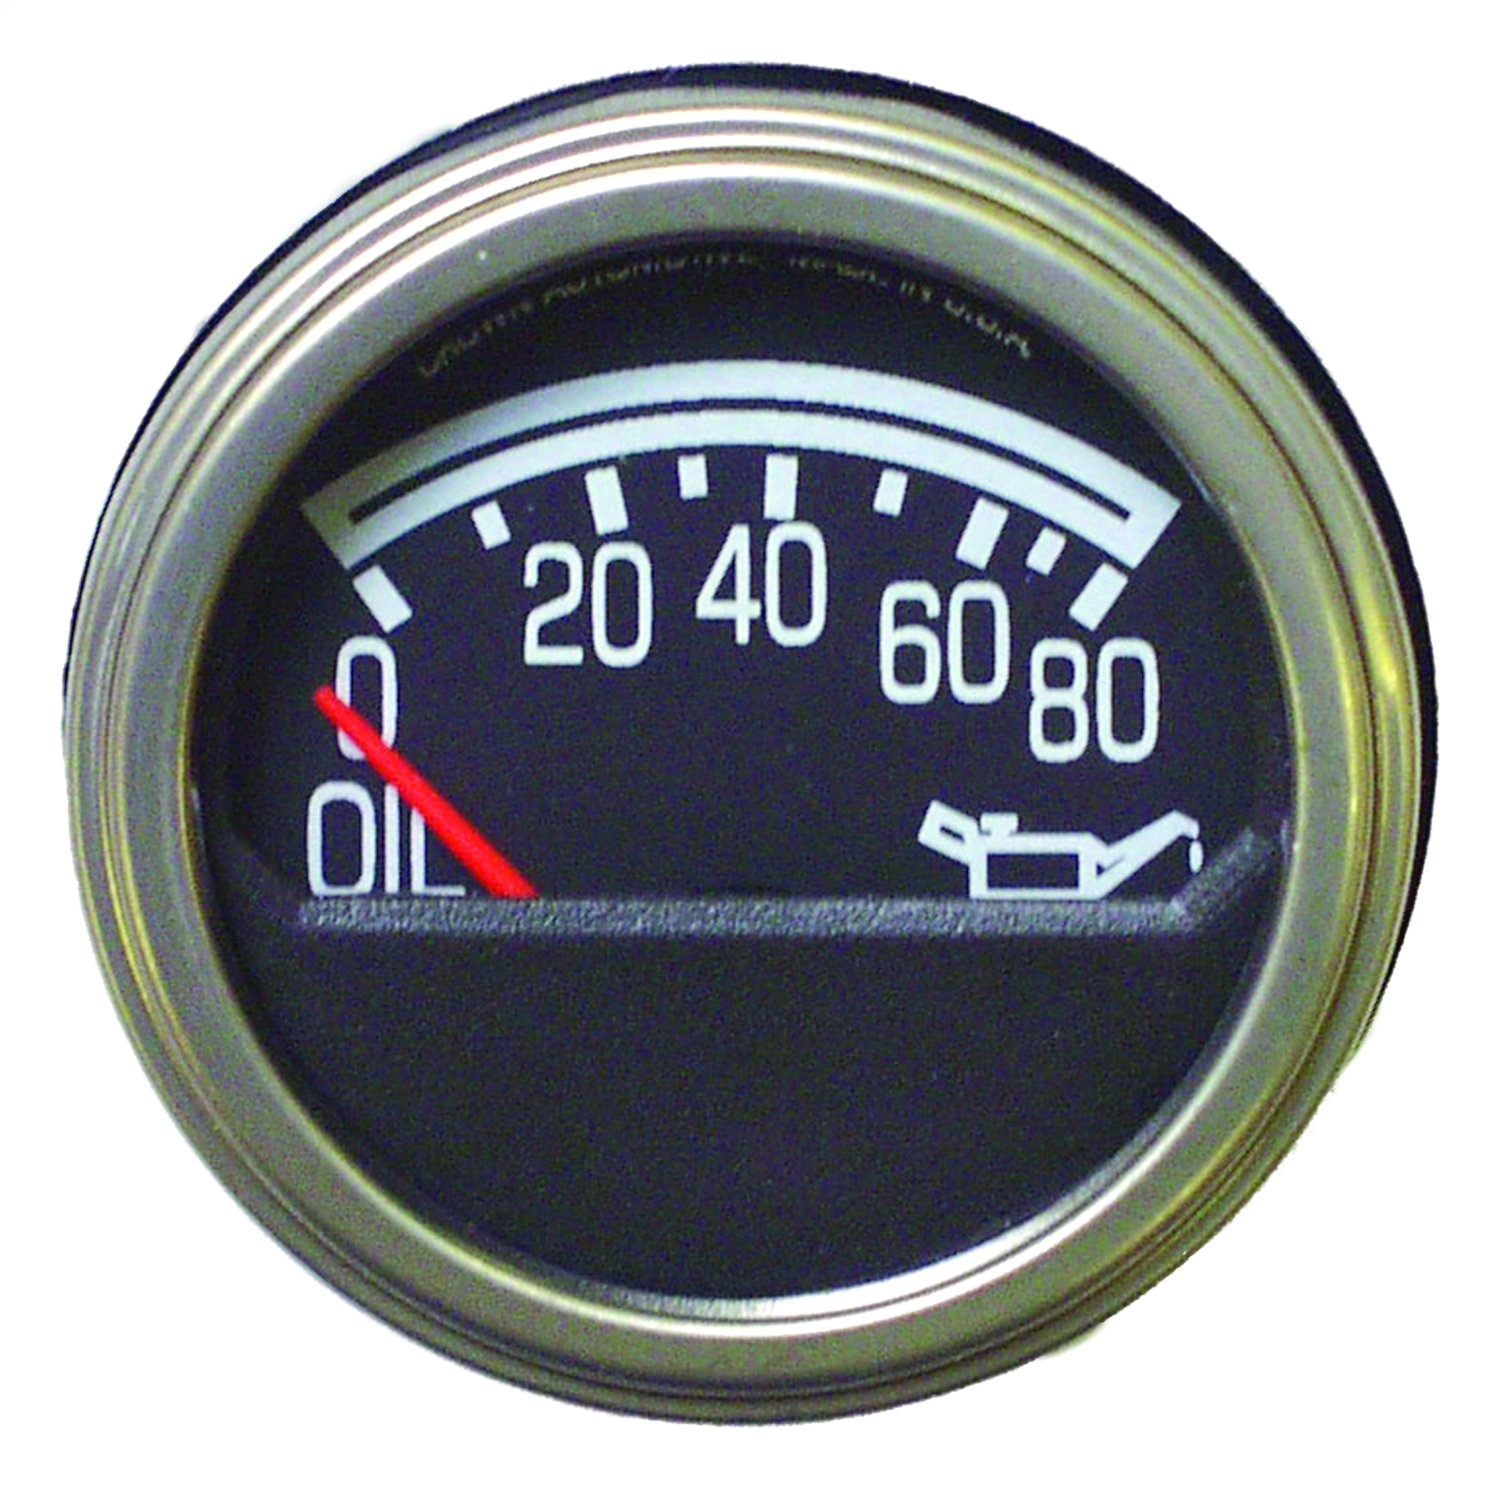 Sentinel Crown Automotive J5750279 Oil Pressure Gauge Fits 76-86 CJ5 CJ7  Scrambler